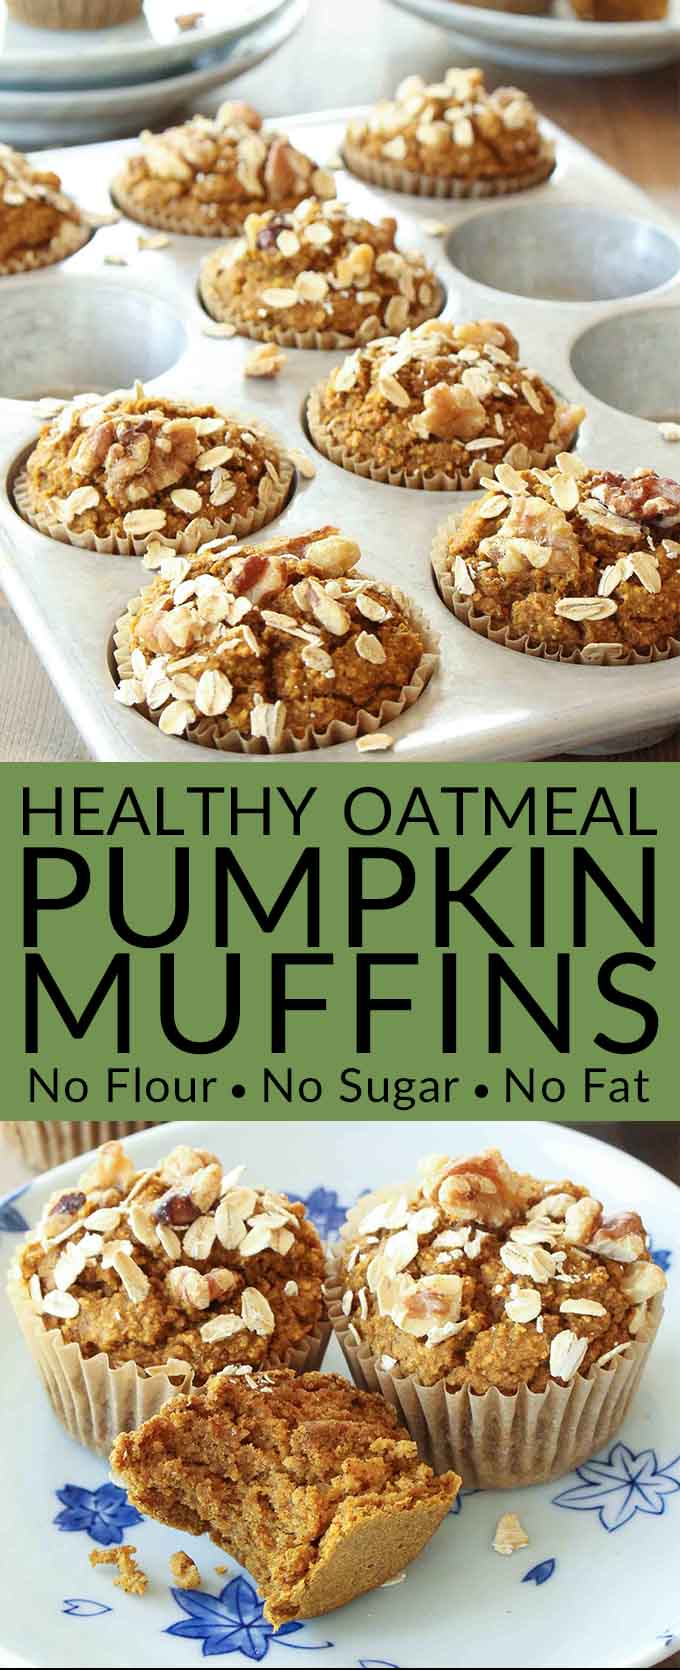 No Flour, Sugar Free, Oil Free, Dairy Free Healthy Pumpkin Muffins Recipe - Love pumpkin baked goods but hate junk food? These healthy pumpkin muffins are tasty and guilt free (gluten free, sugar free, oil free & dairy free)! #pumpkinmuffins #muffins #brendid #pumpkin #pumpkinbread #glutenfree #glutenfreemuffins